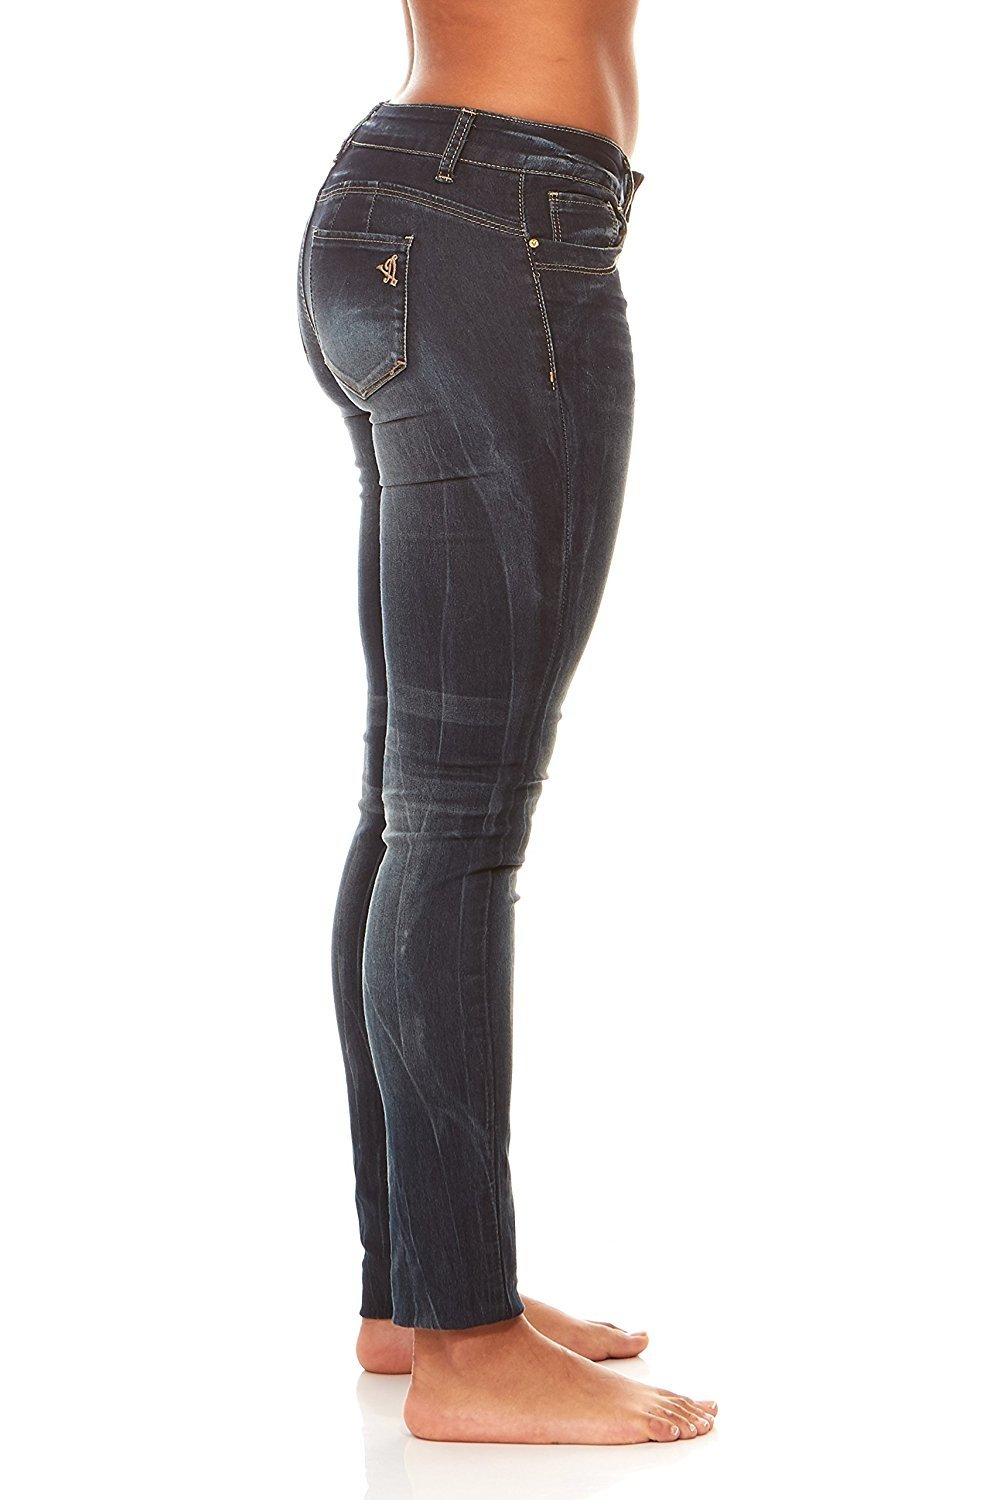 Details about  /VIP Jeans for Women Skinny Slim Fit Butt Lift Stretchy ankle Acid Washed